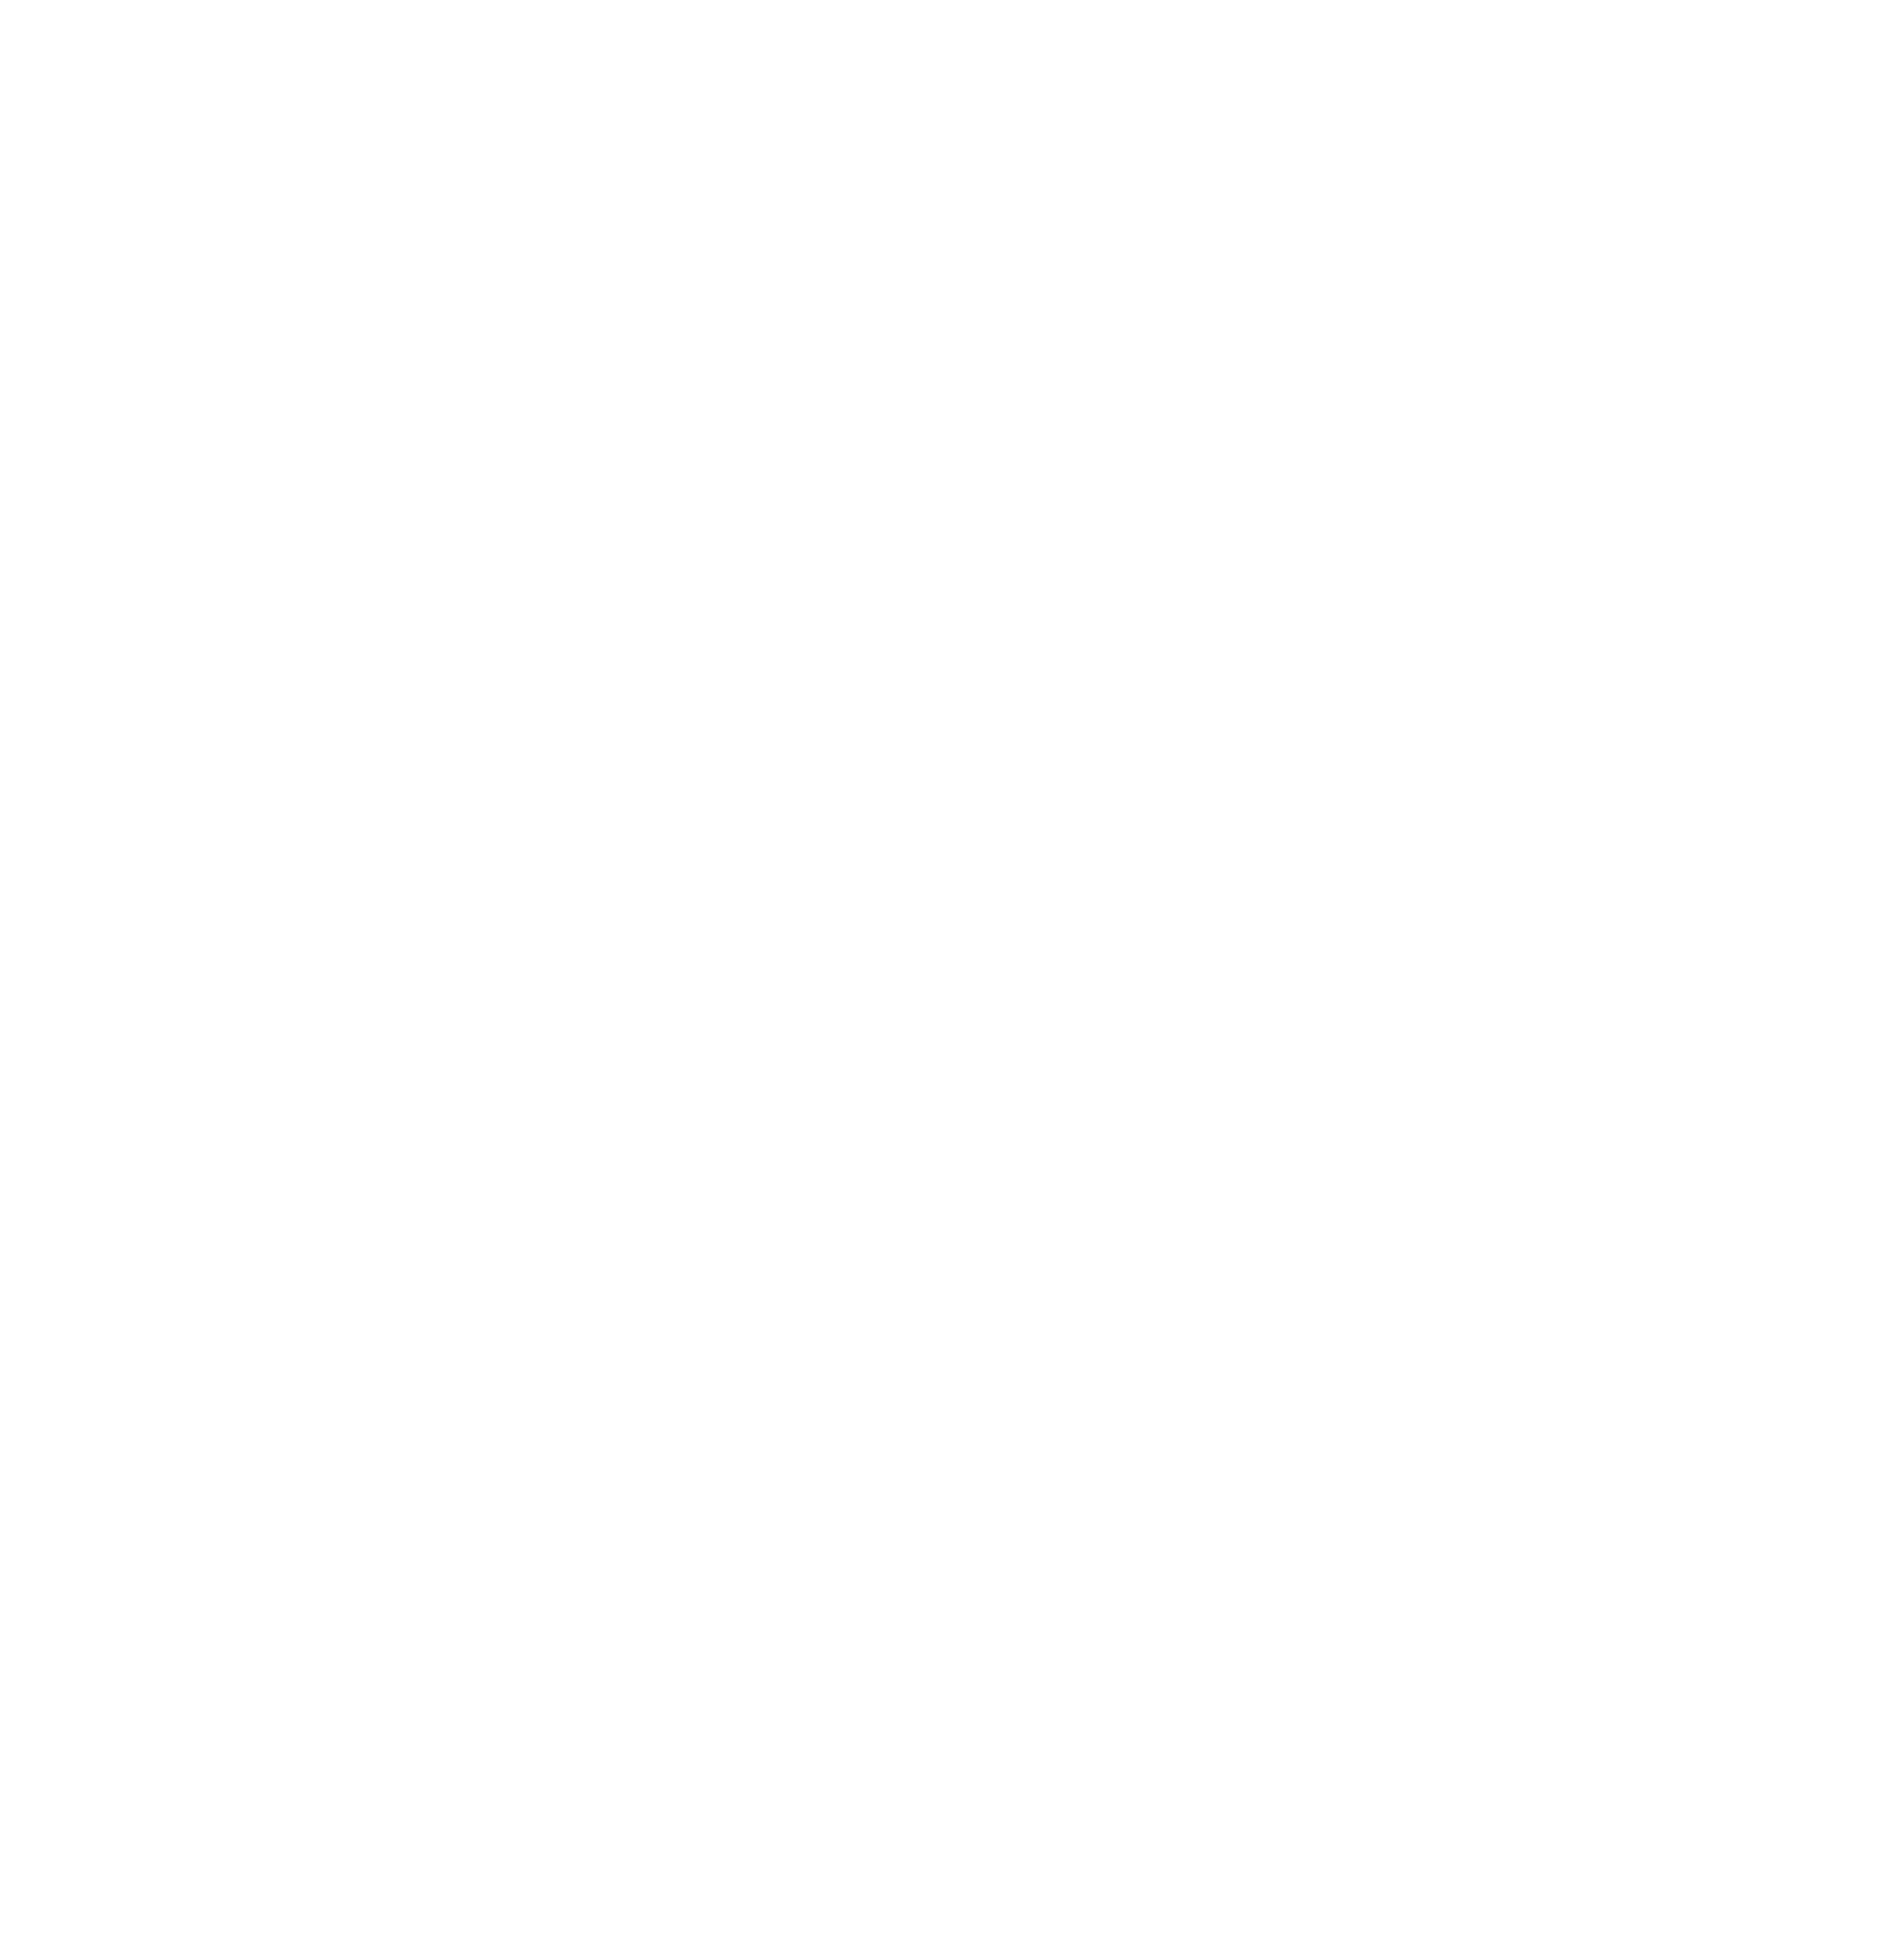 Holiday MRC - Want to earn $150 with our Member Rewards Credit Card? Offer ends 12/31.